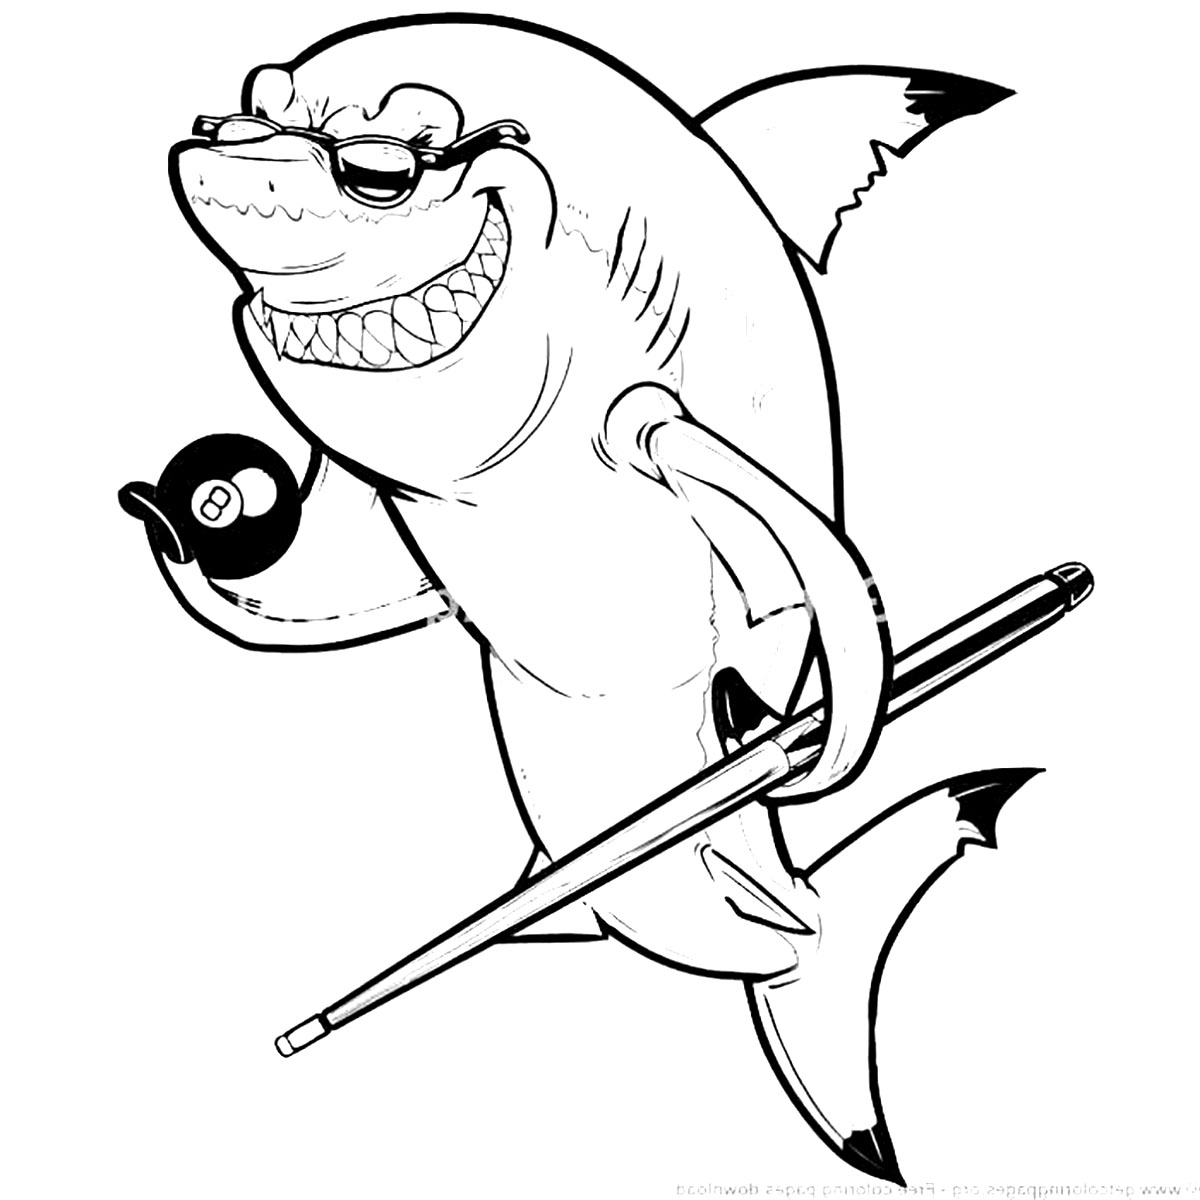 Incredible Sharks coloring page to print and color for free